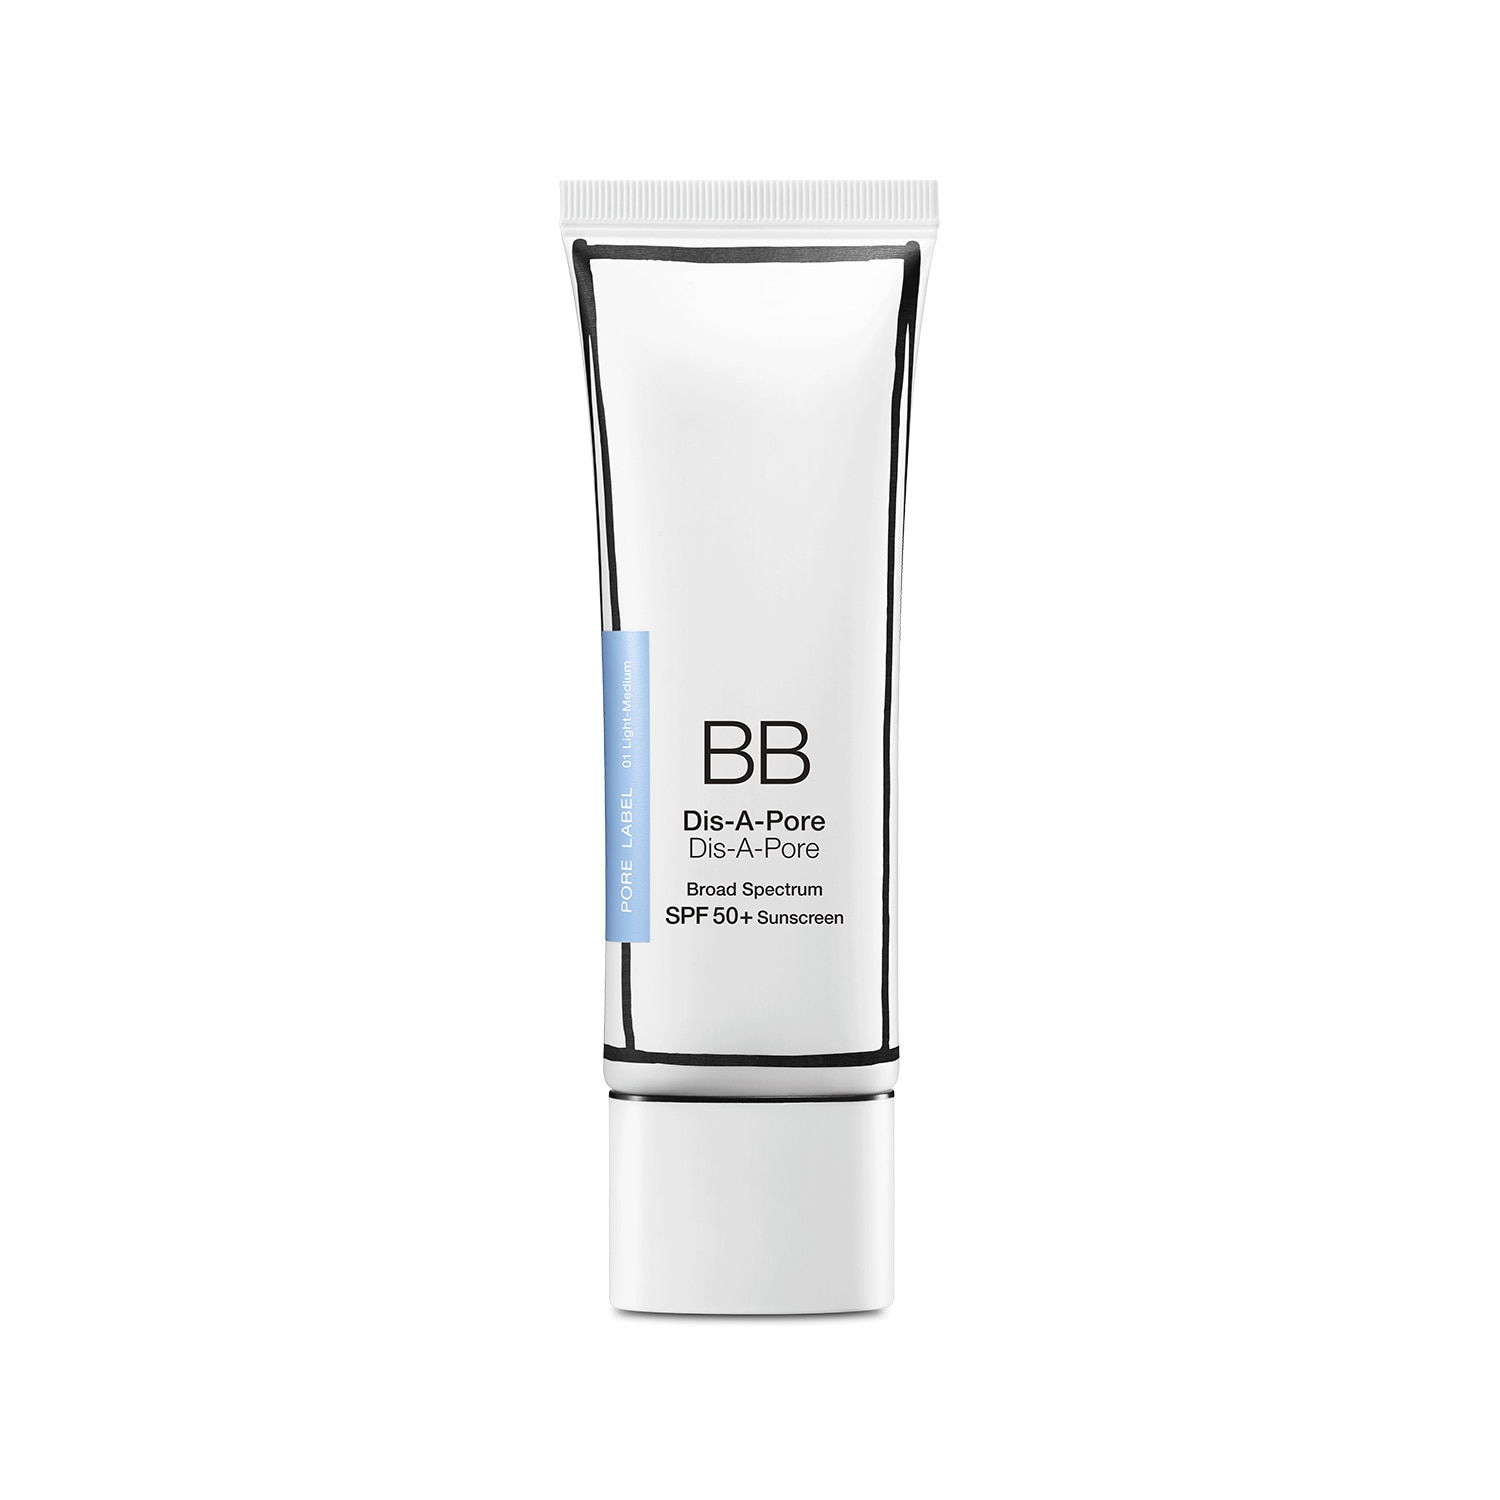 BB DIS-A-PORE BROAD SPECTRUM SPF 50+ SUNSCREEN 50 ML